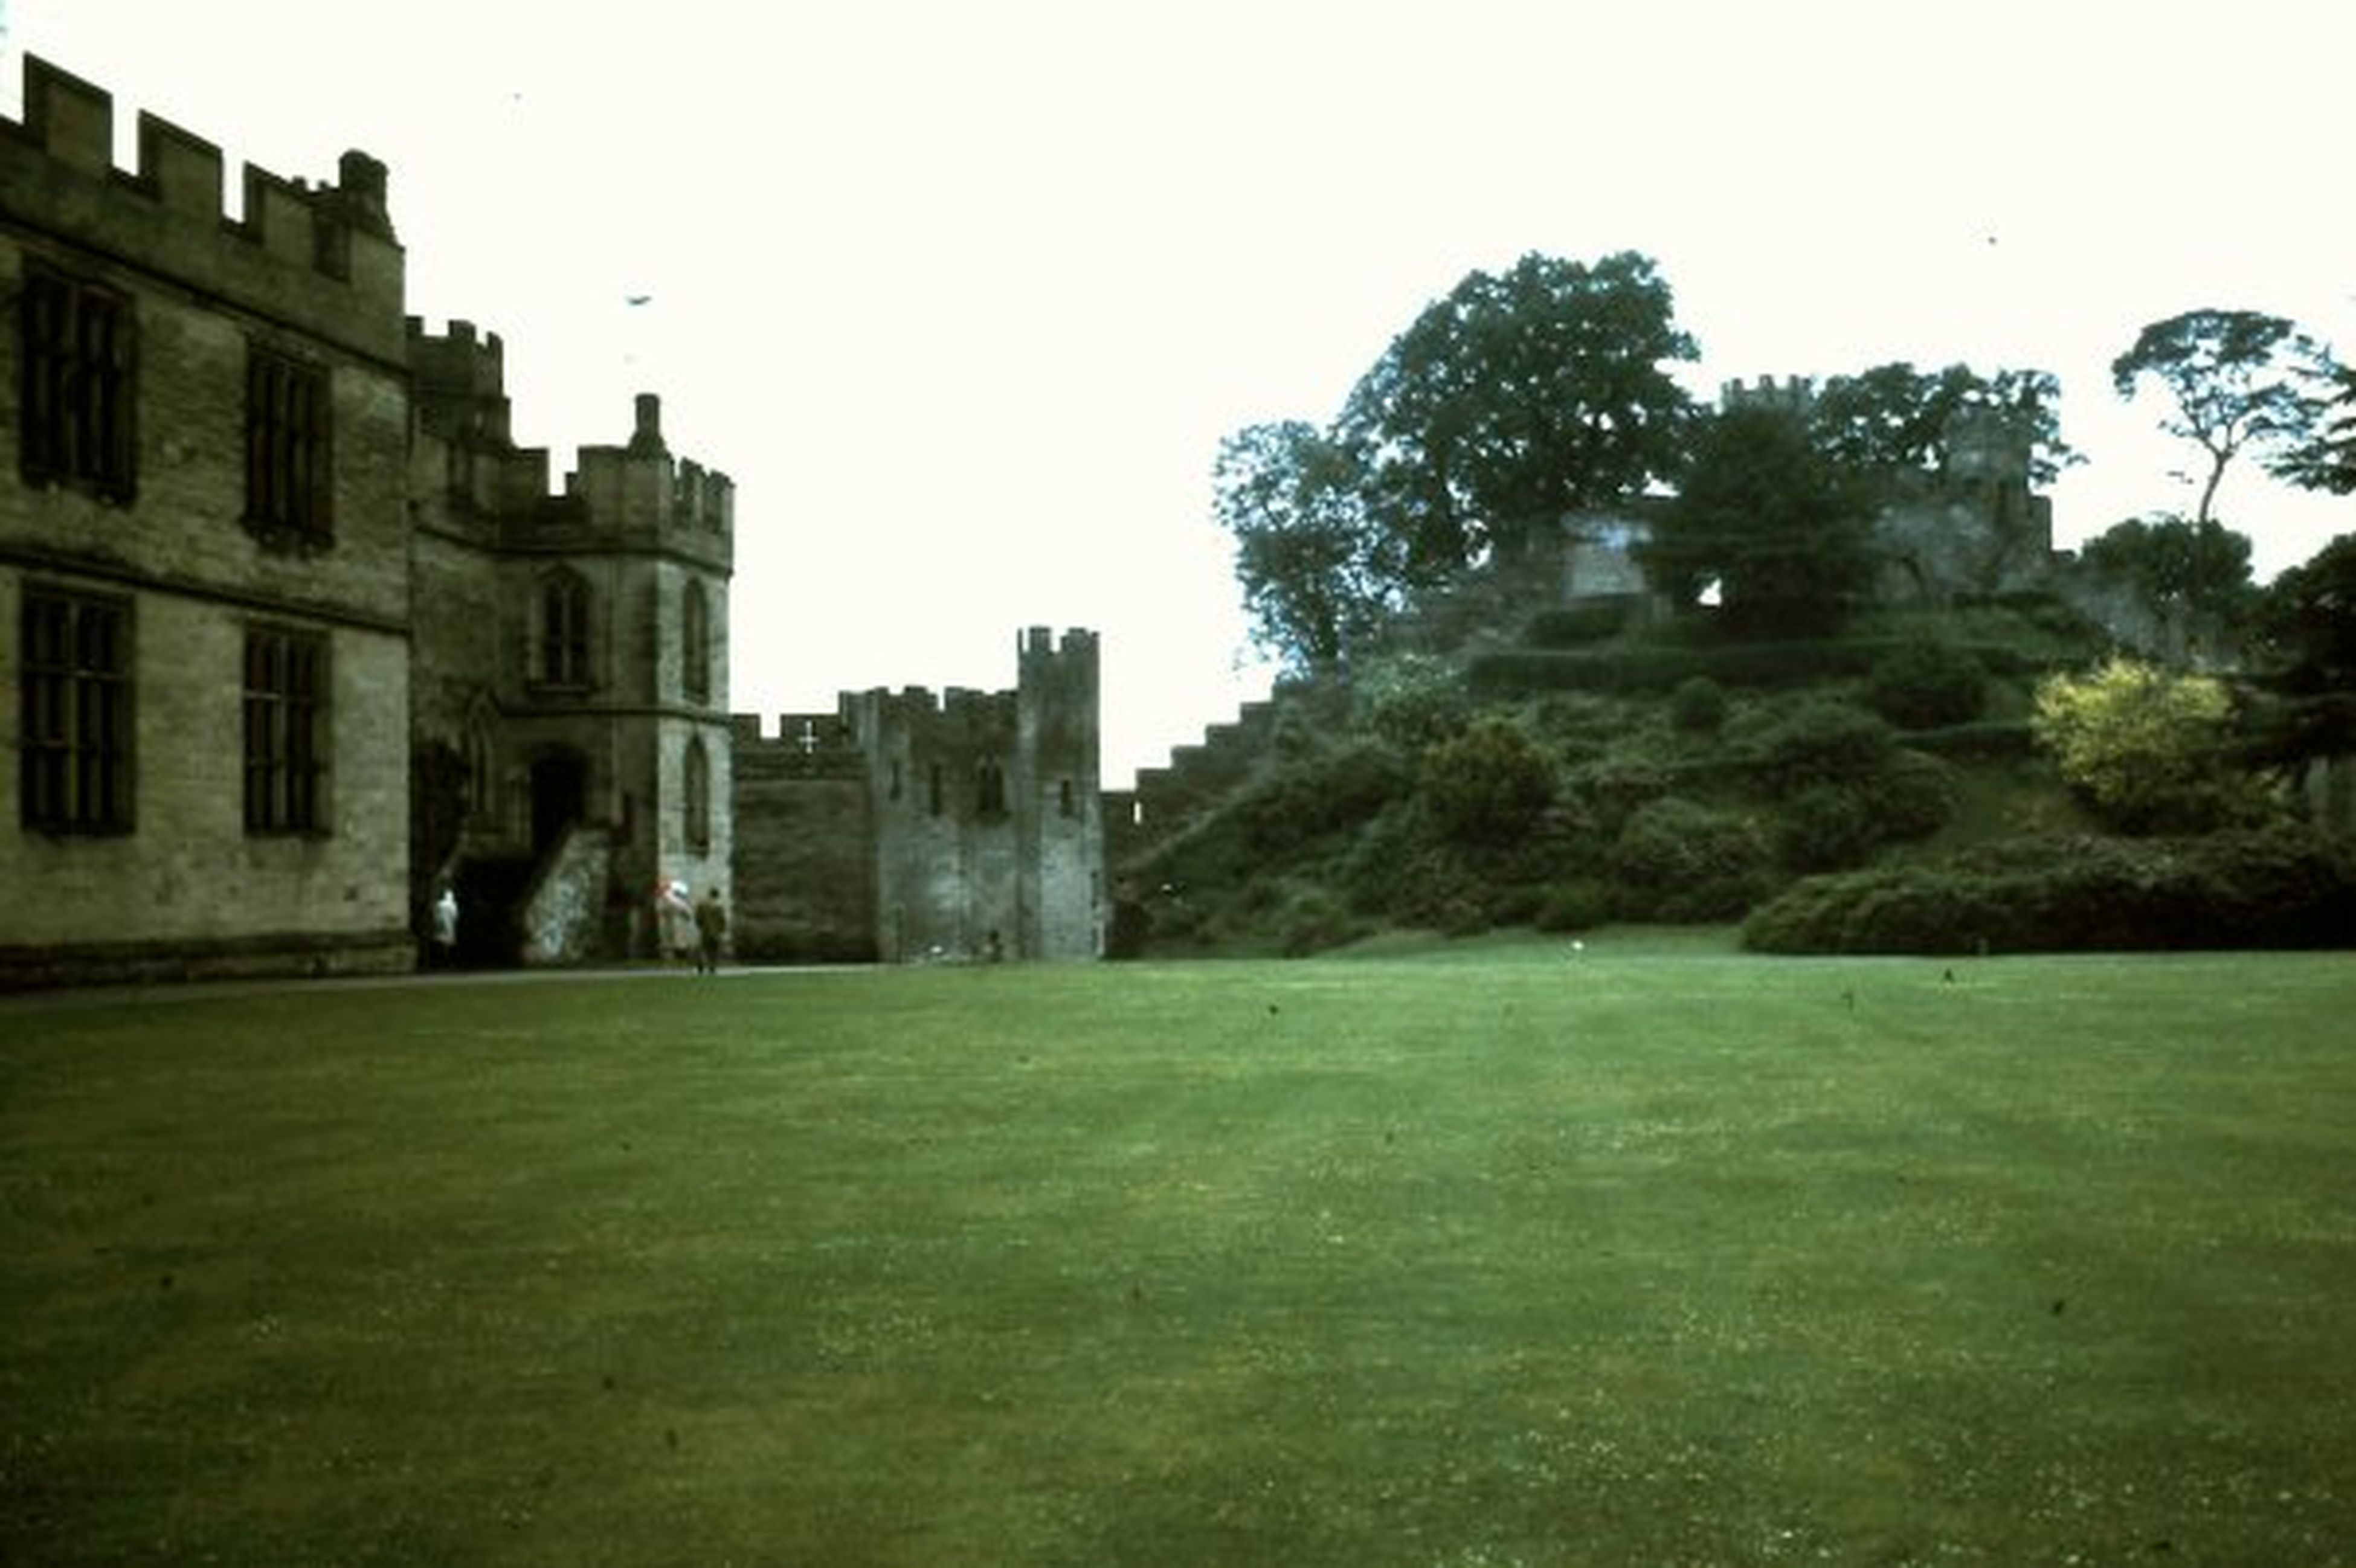 Architecture Building Exterior Built Structure Castle England Grass Outdoors Tree Warwick Castle Courtyard Warwick Castle Courtyard 1973.